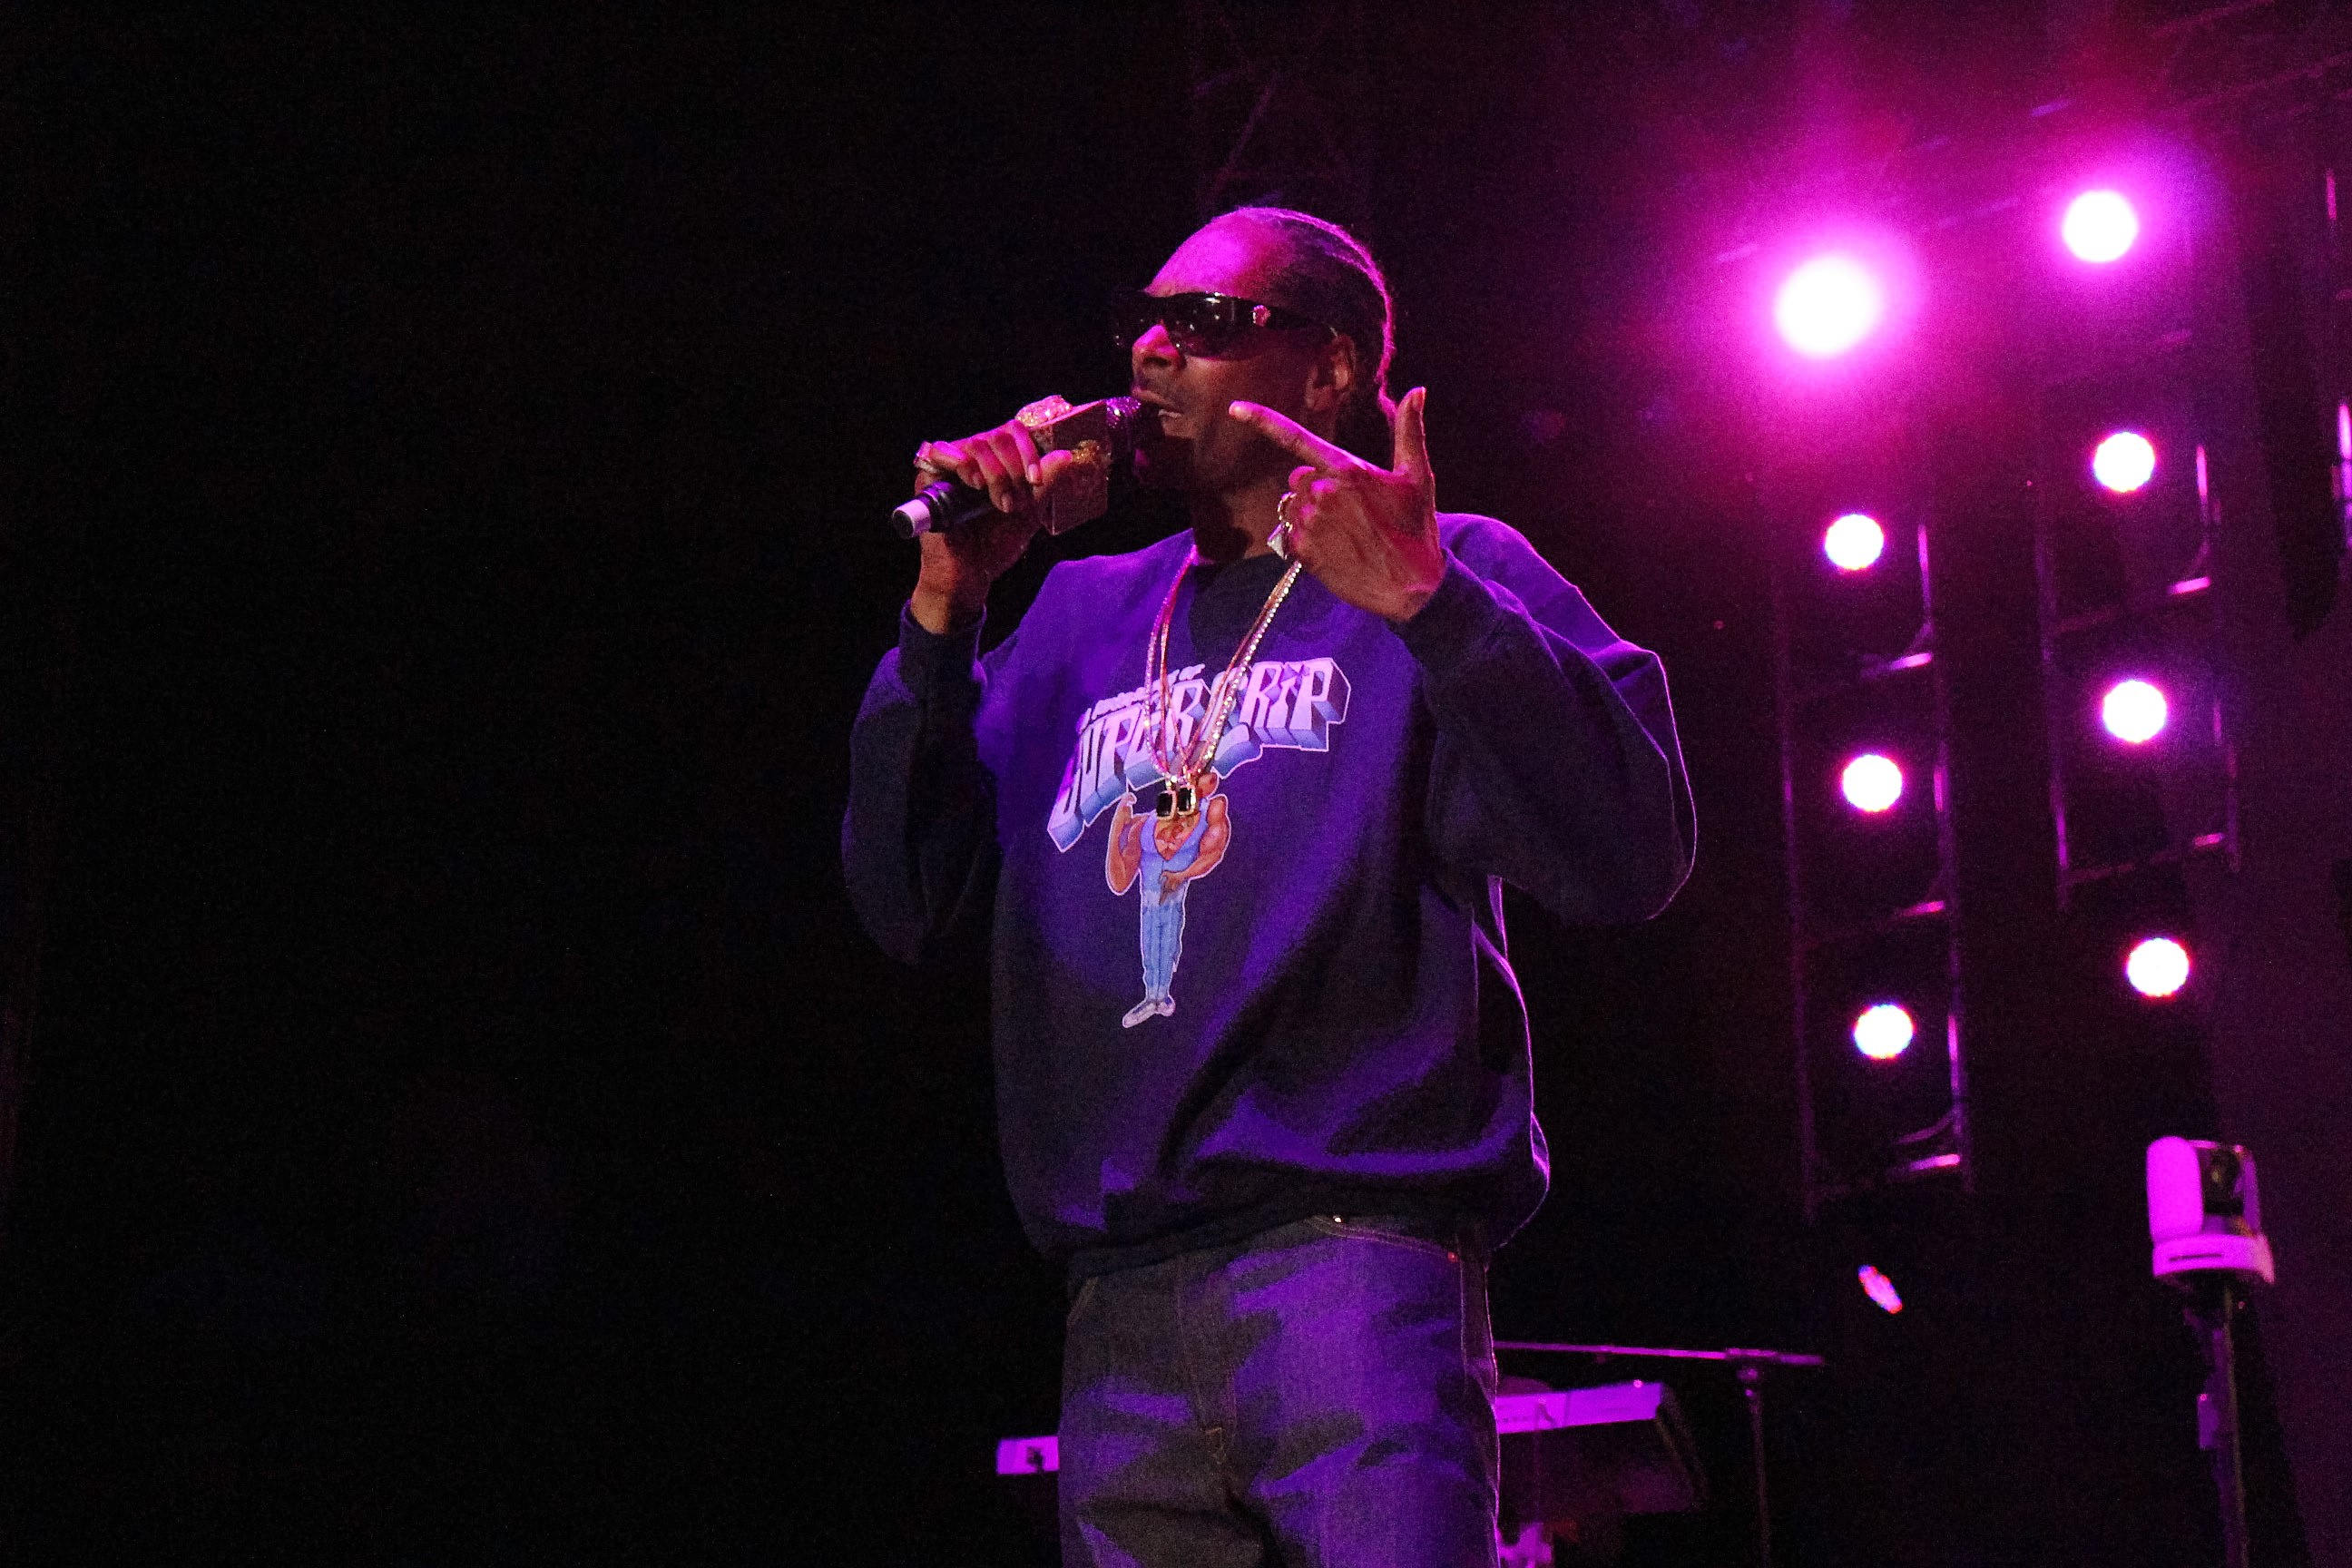 hip hop concert review Buy legends of hip hop tickets from the official ticketmastercom site find legends of hip hop tour schedule, concert details, reviews and photos.